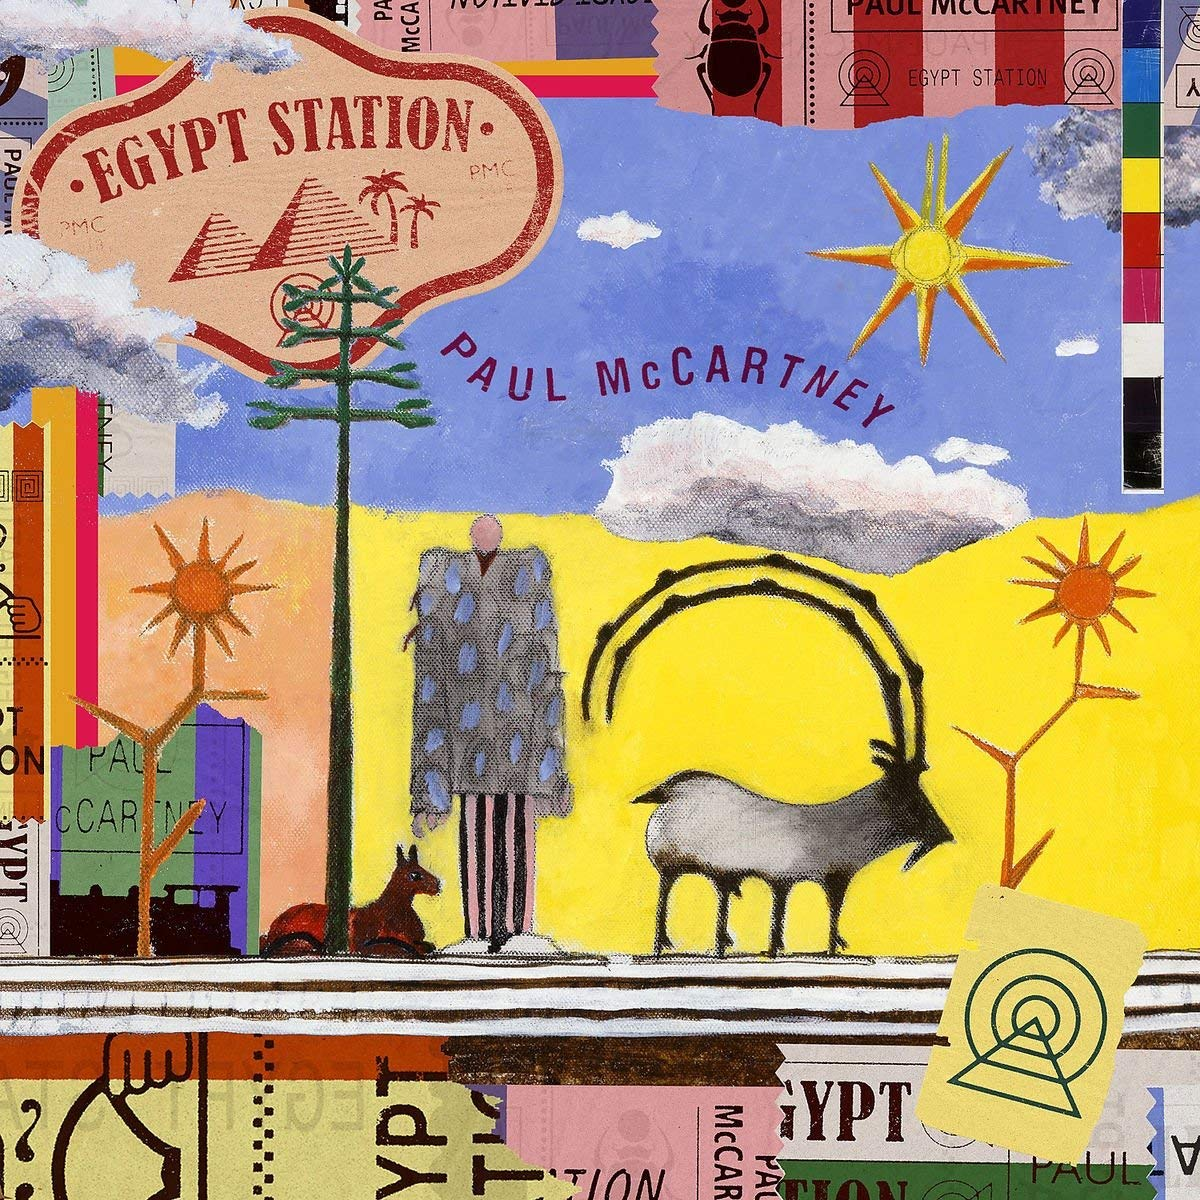 Paul McCartney premieres new solo album, Egypt Station: Stream